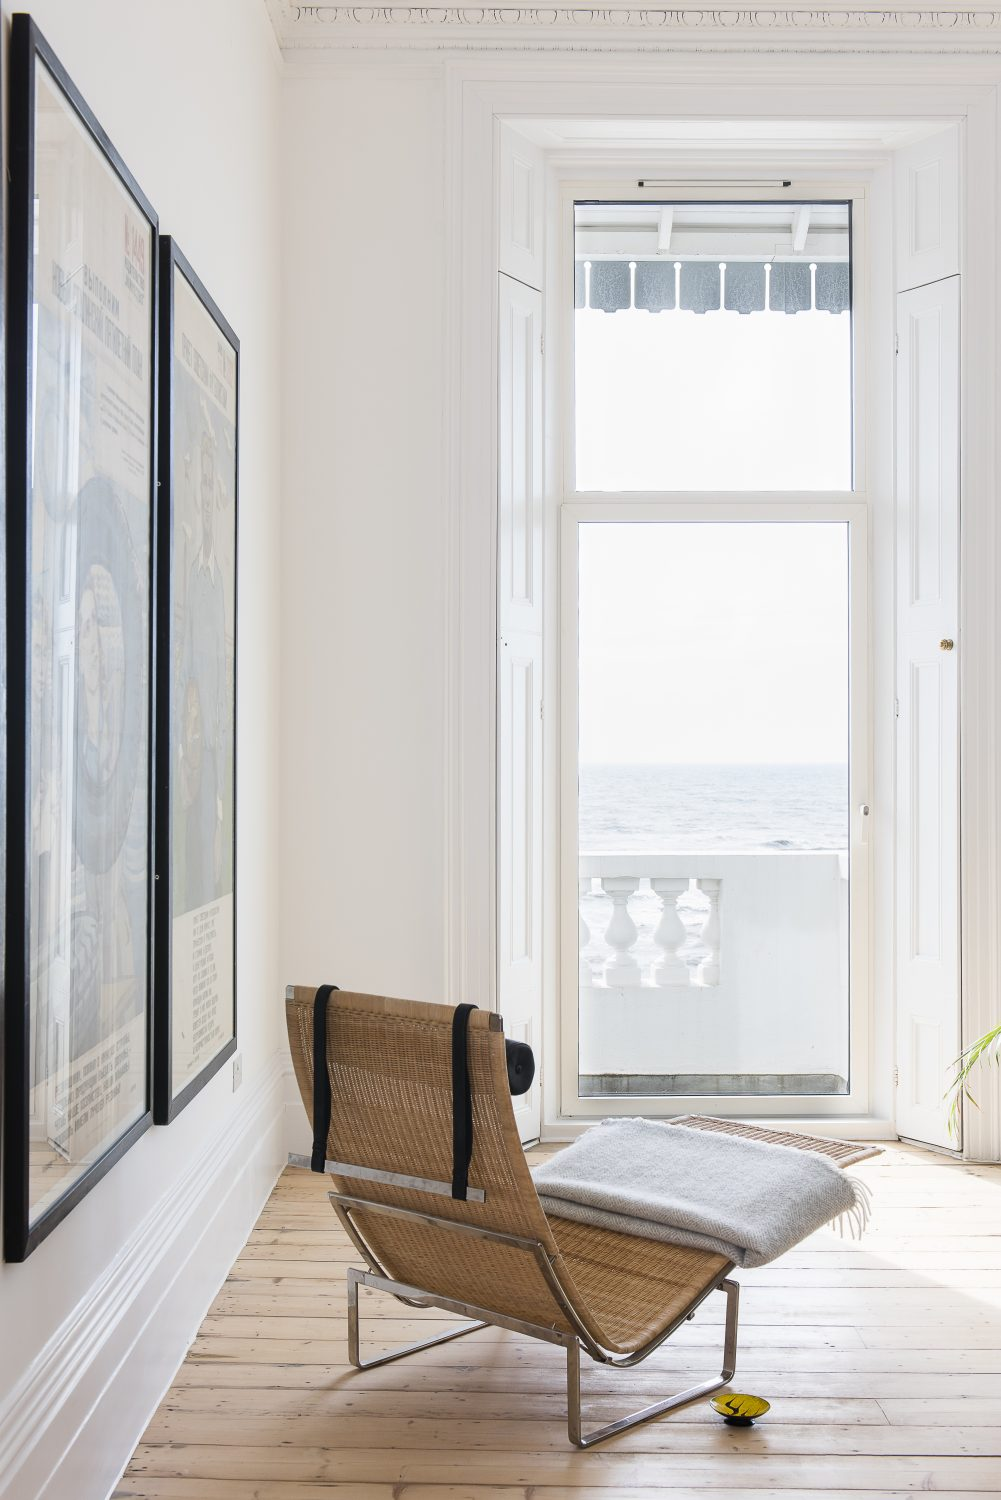 The main living area has floor-length windows with views out to sea. The rattan chaise longue is by Poul Kjaerholm